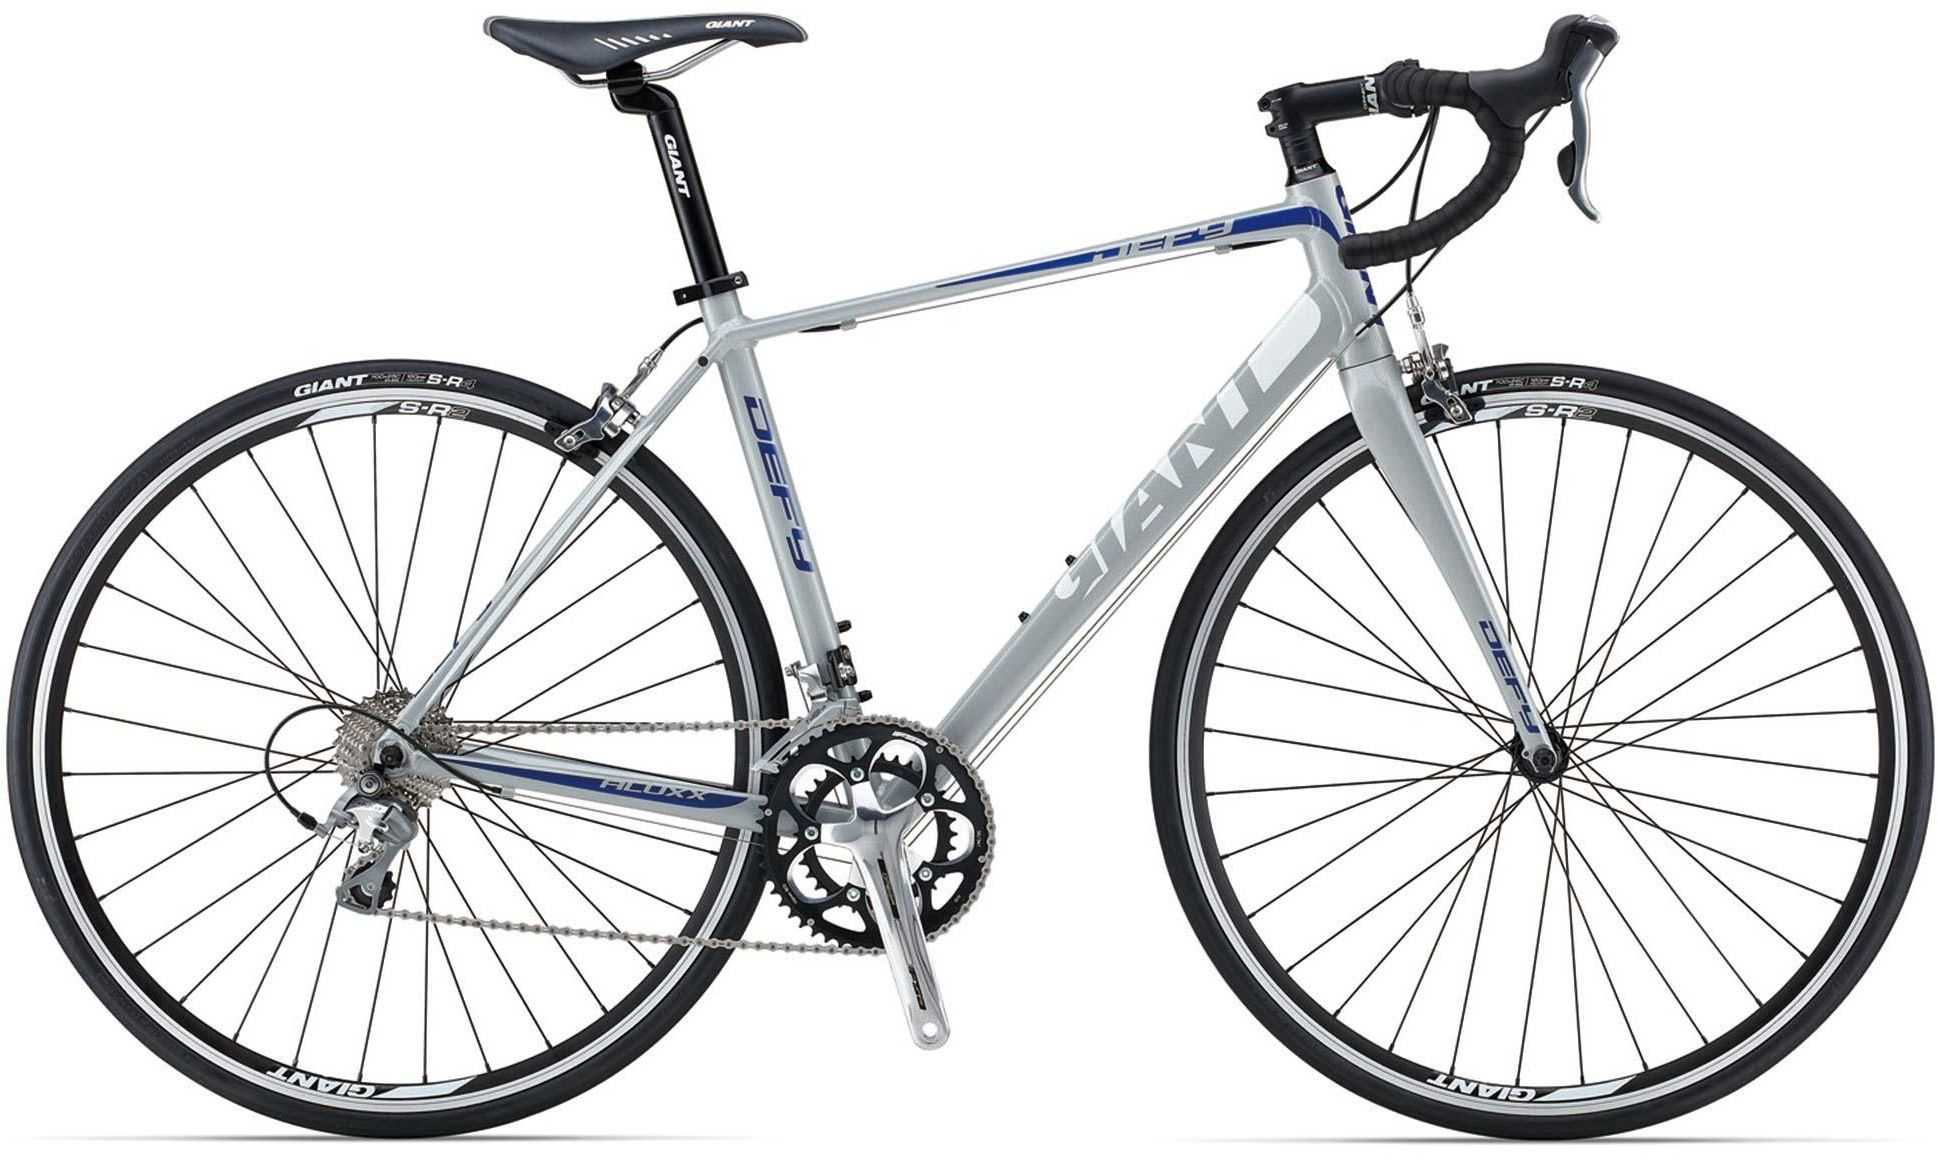 Giant Defy 2 2013 review - The Bike List